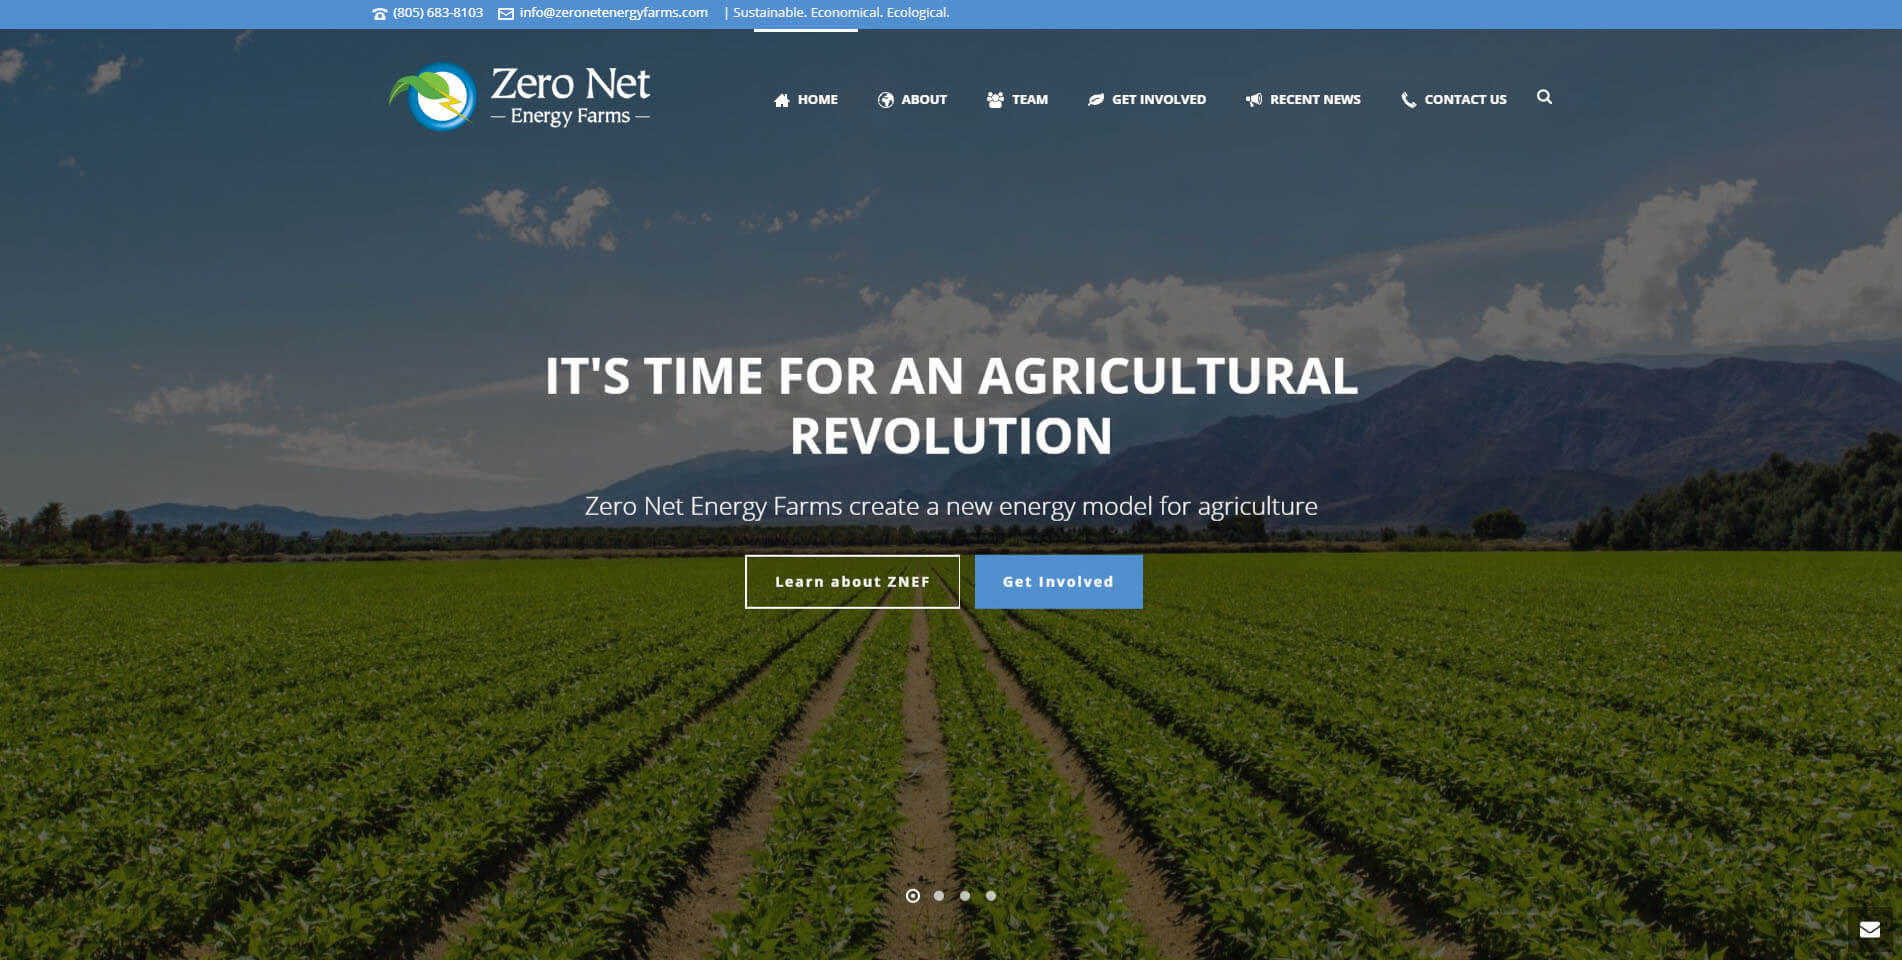 An image of the homepage of Zero Net Energy Farms, website created by Not Fade Away.